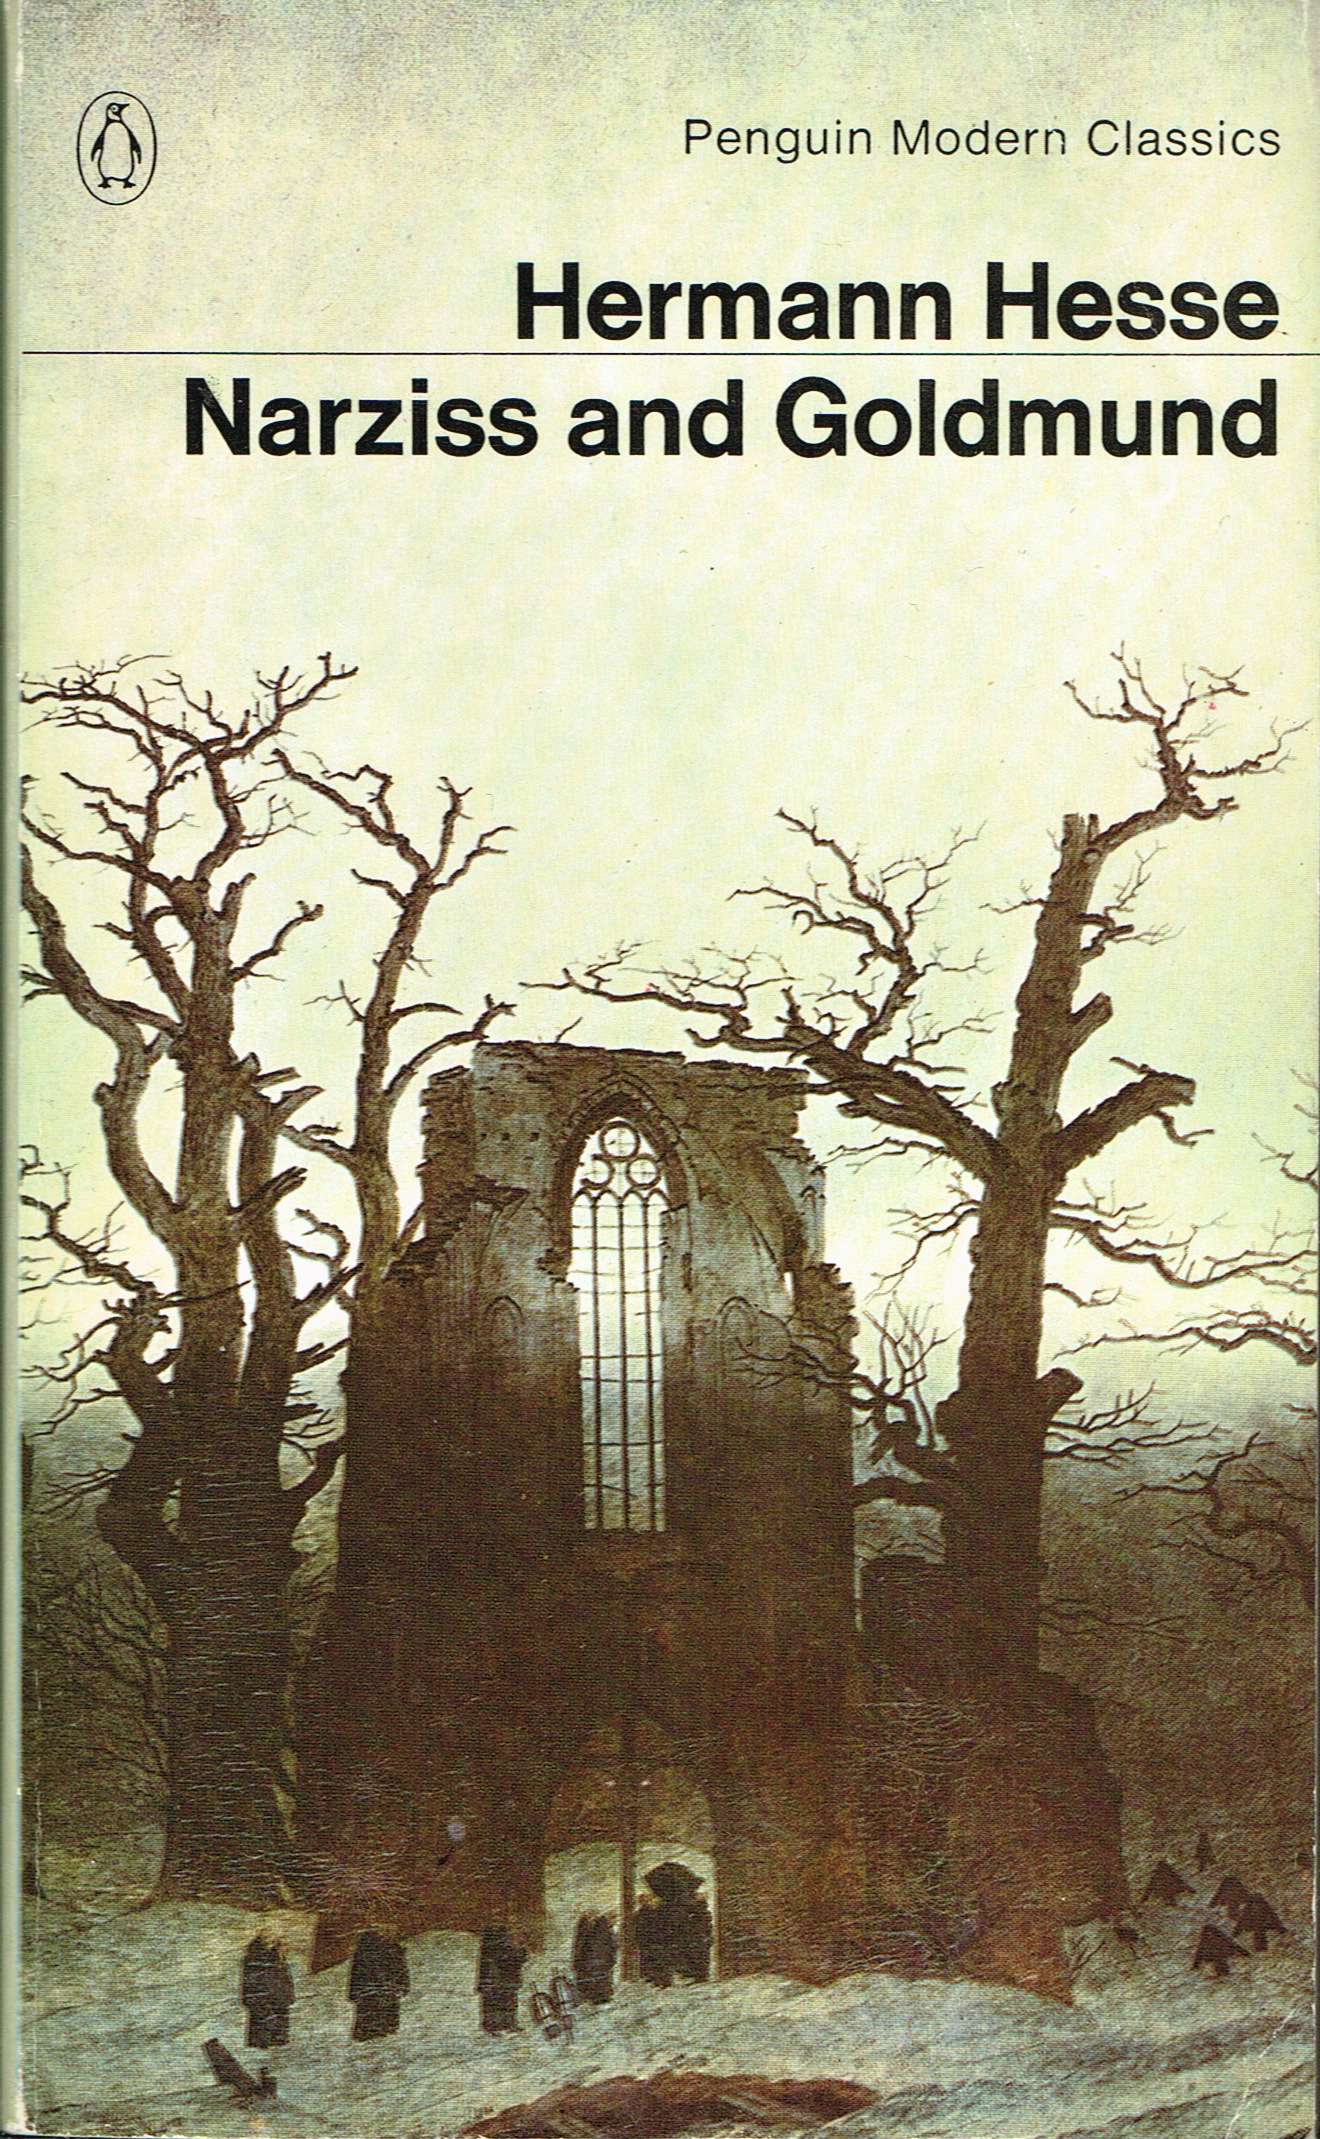 Narcissus and Goldmund Summary